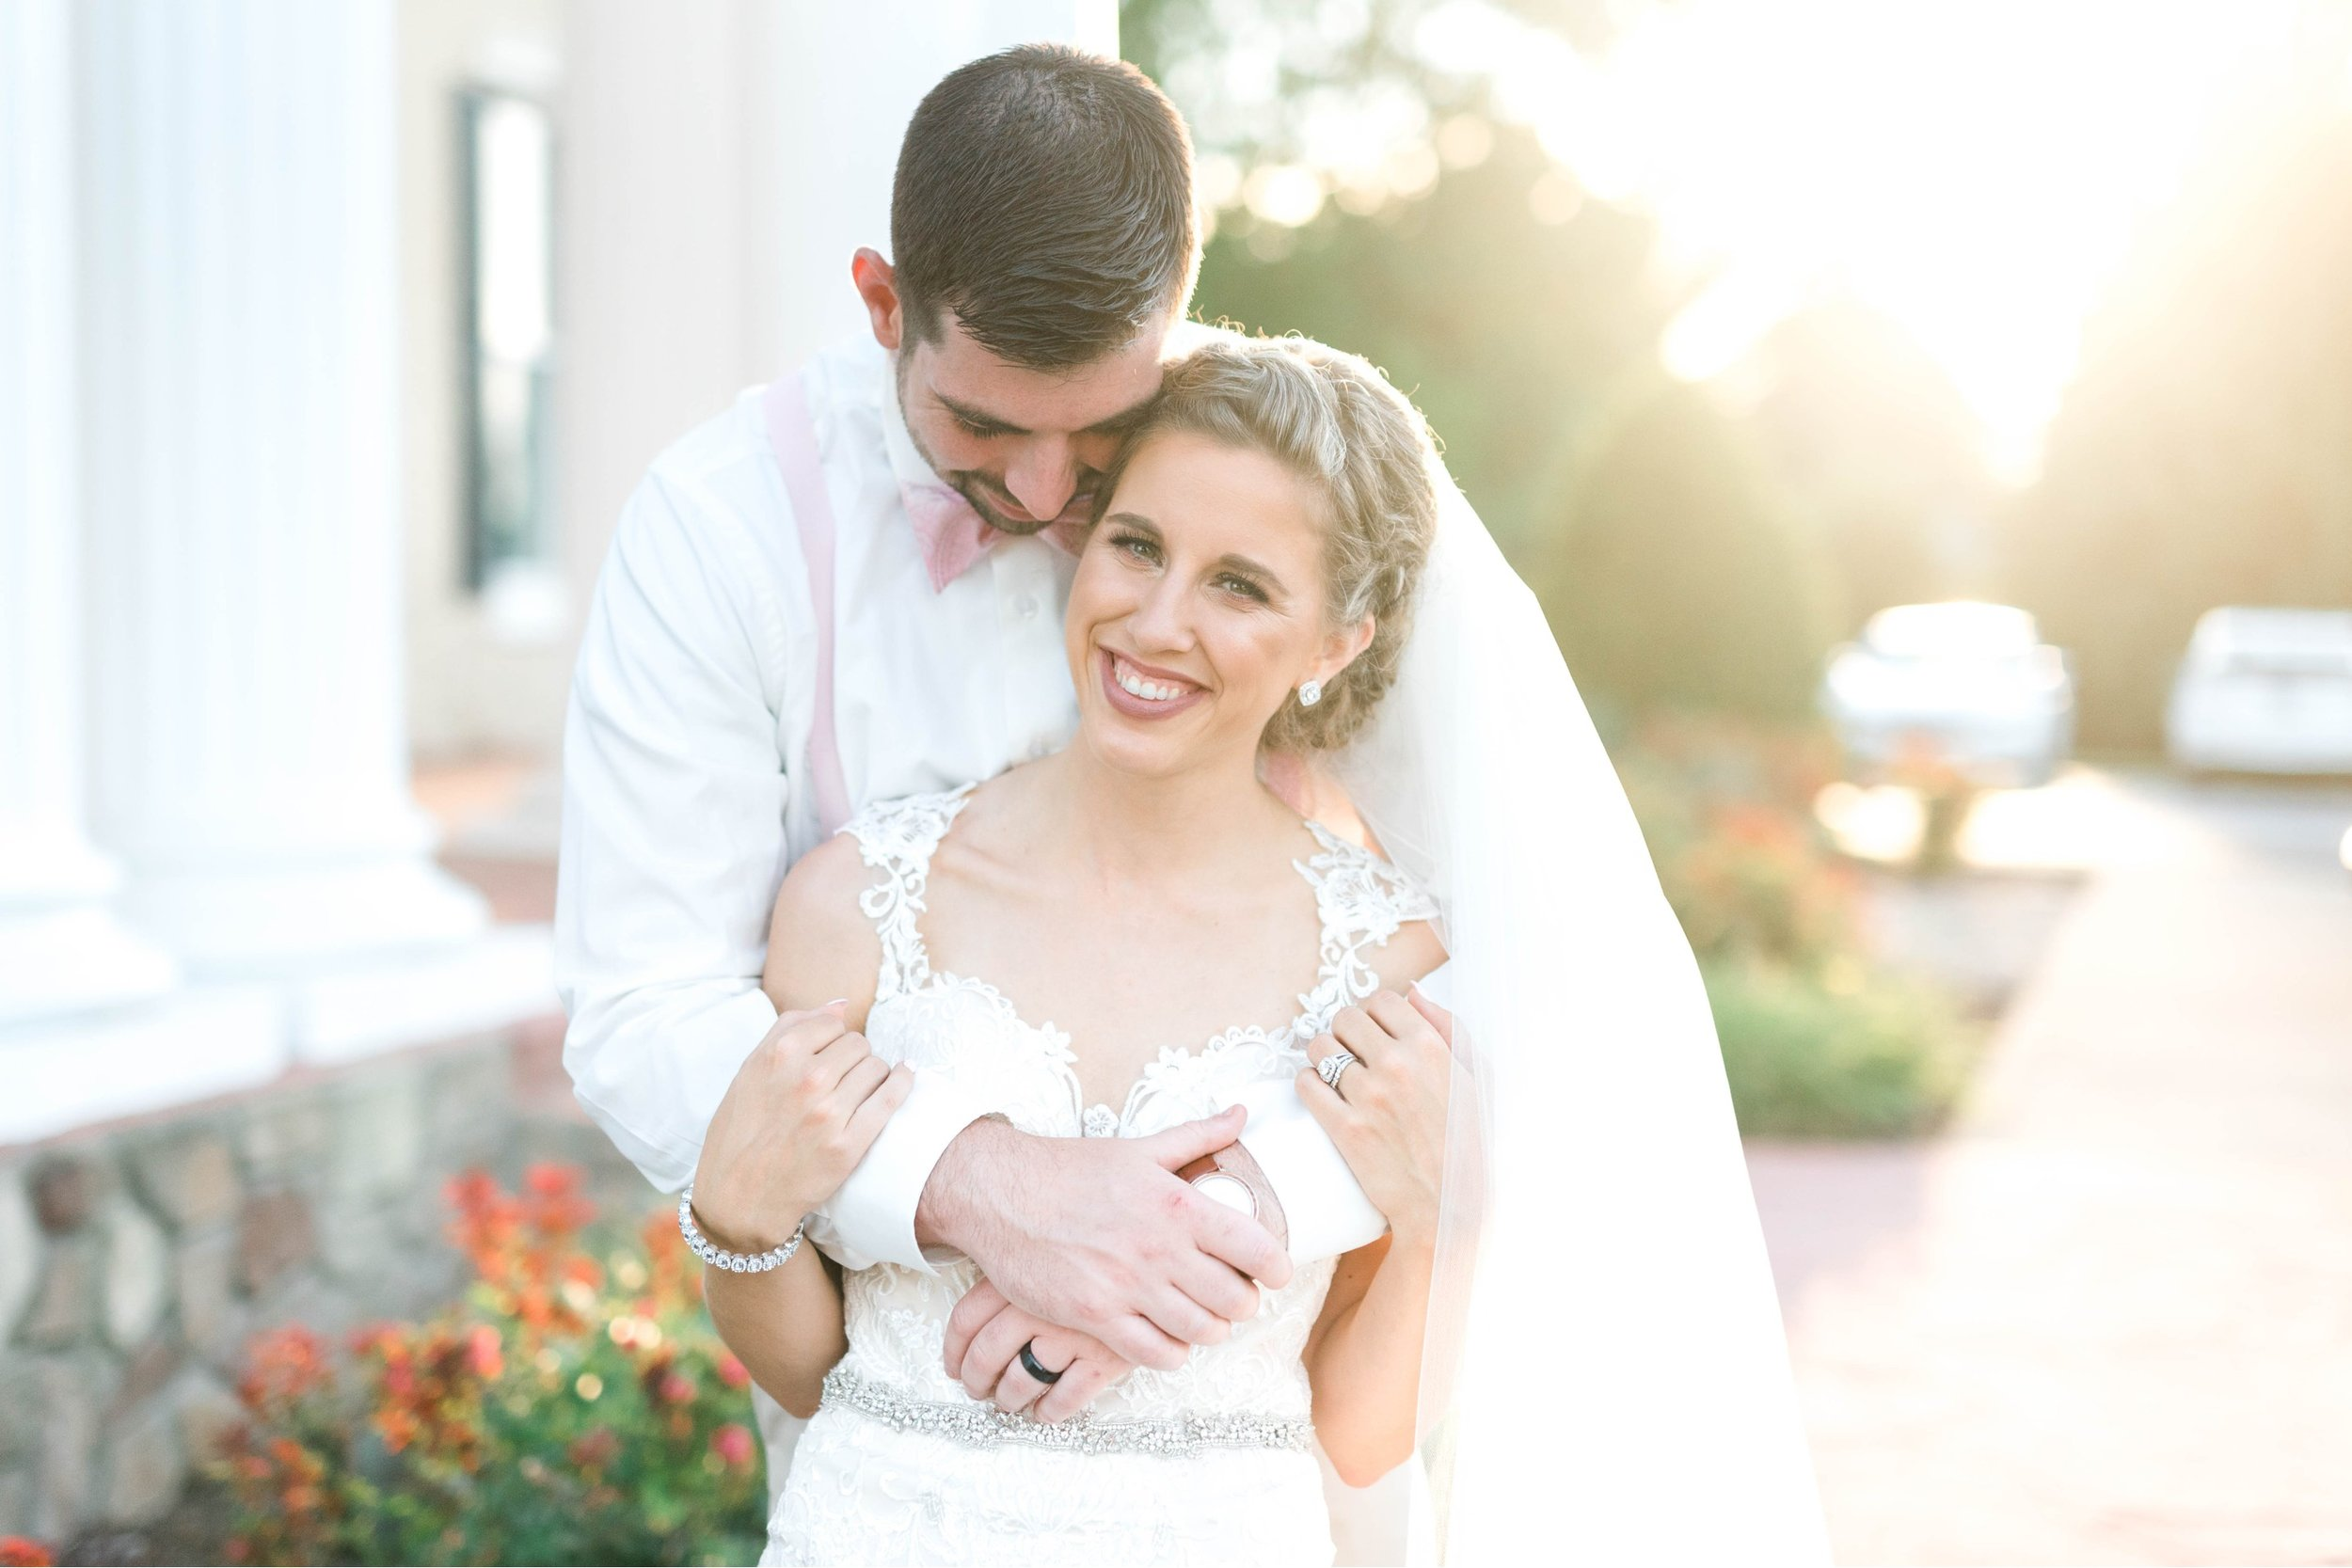 BedfordColumns_EntwinedEvents_Lynchburgwedding_VIrginiaweddingphotographer_ALlisonNIck 22.jpg